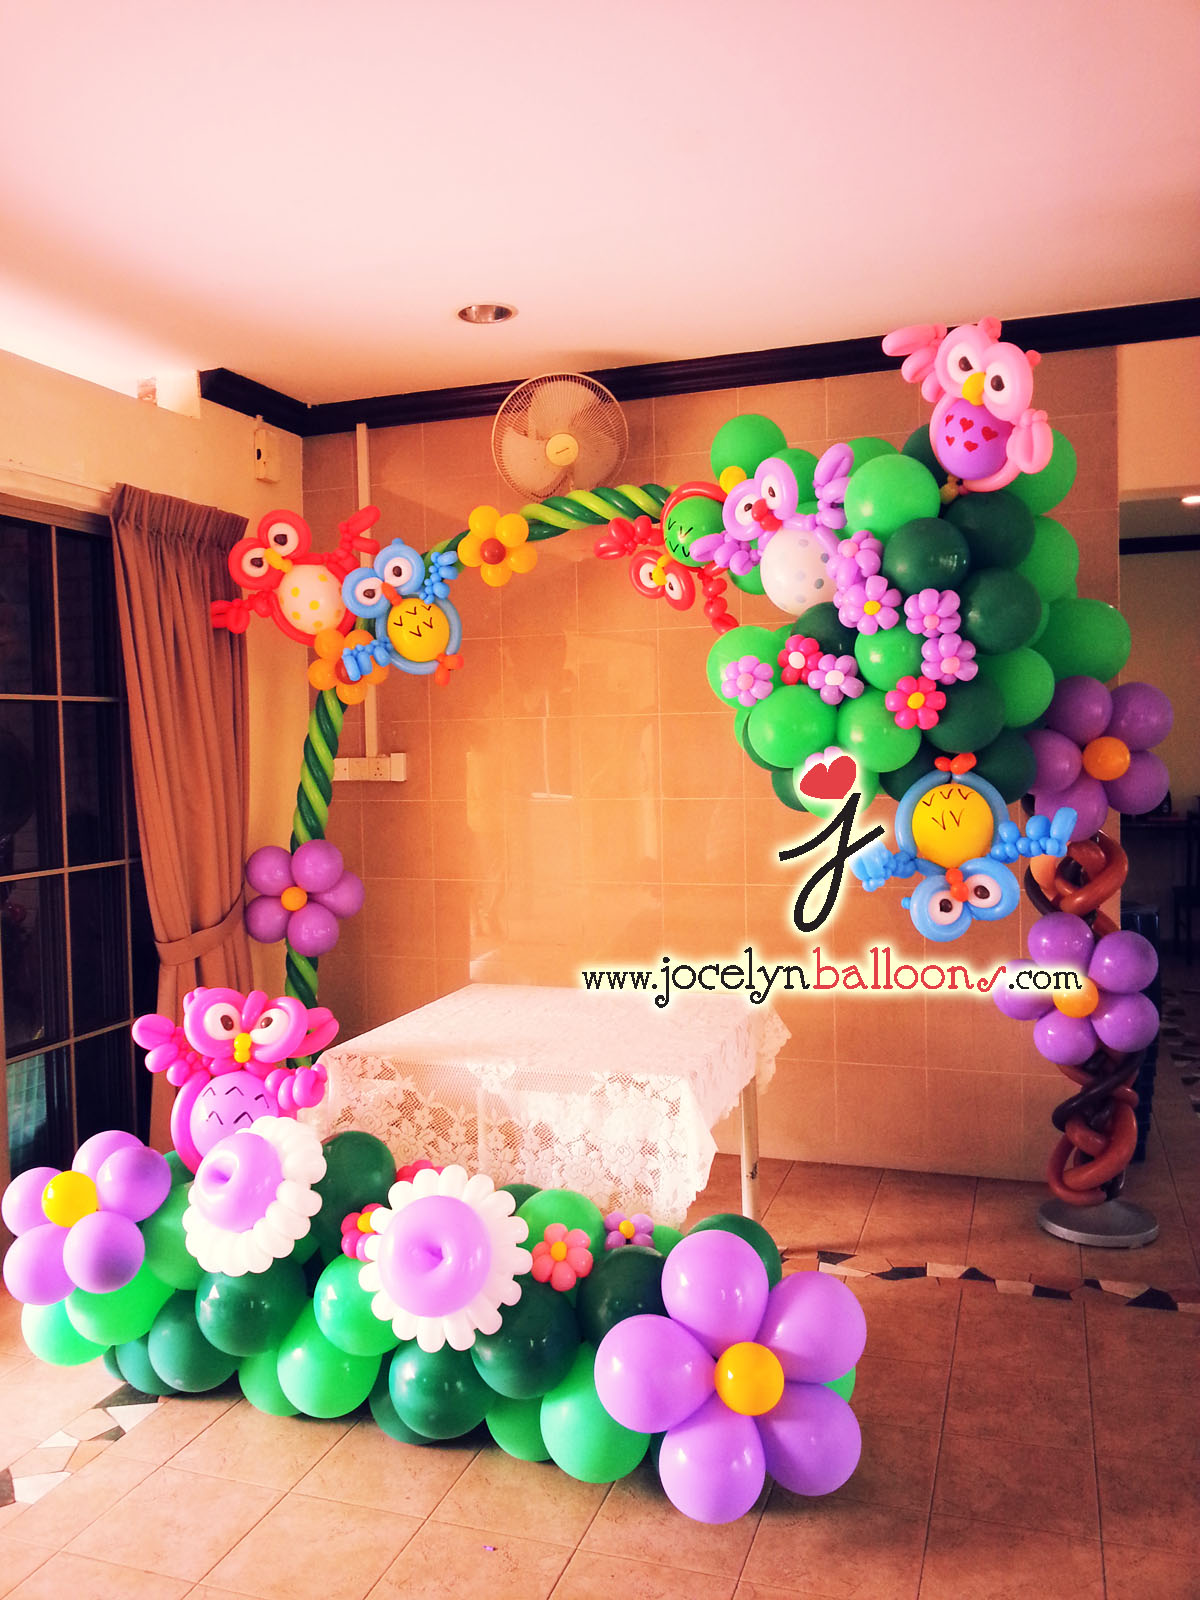 Cheapest balloon decorations for birthday party